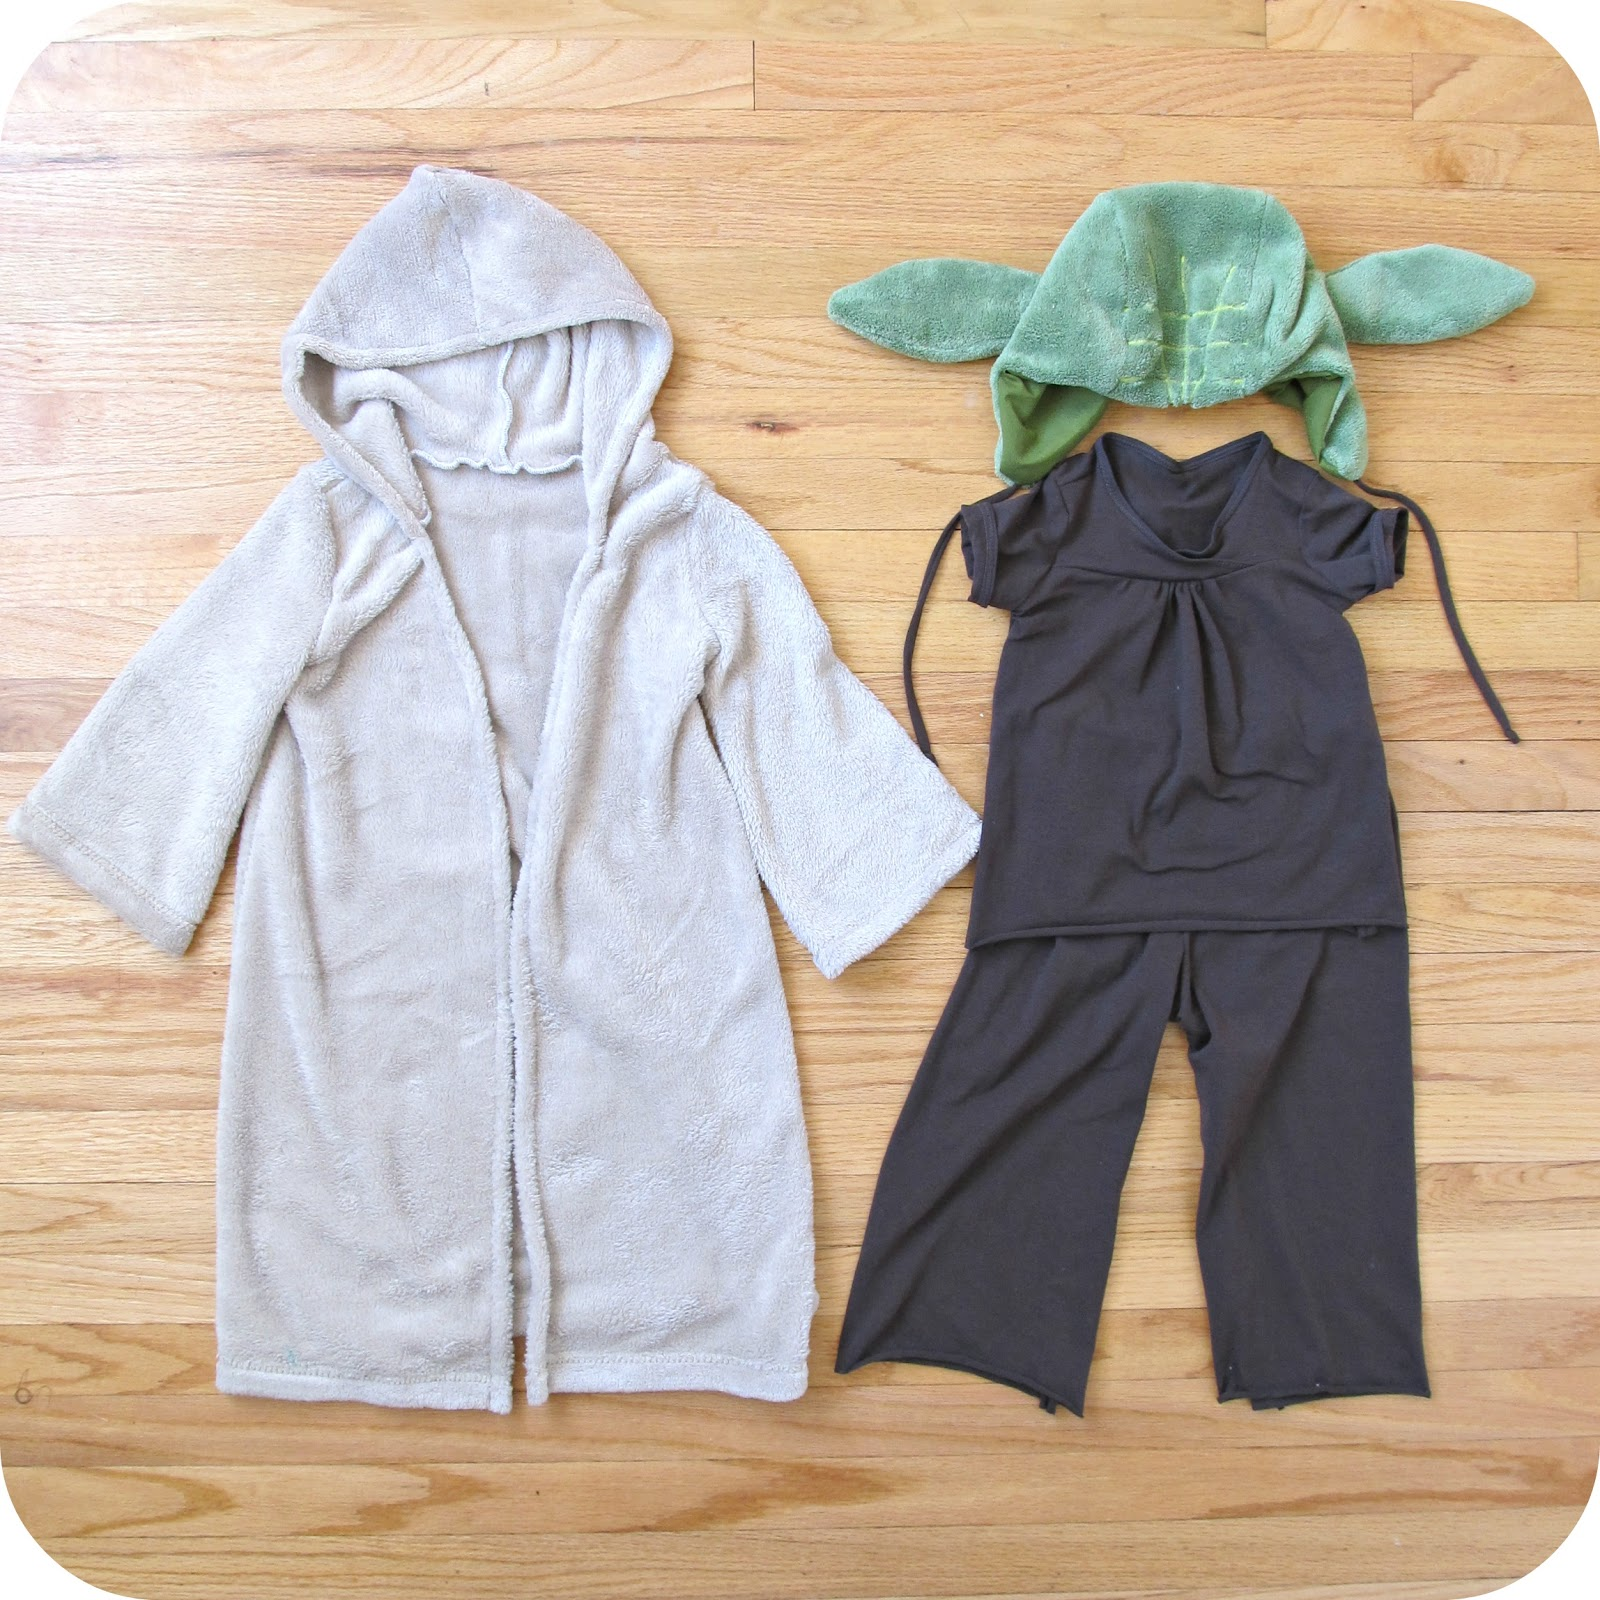 Comfy dress up yoda costume home made by jill 2013 robe go to patterns signature dress pattern with hood and maxi length options i belled out the sleeves to get a looser cut and cut the front robe solutioingenieria Gallery